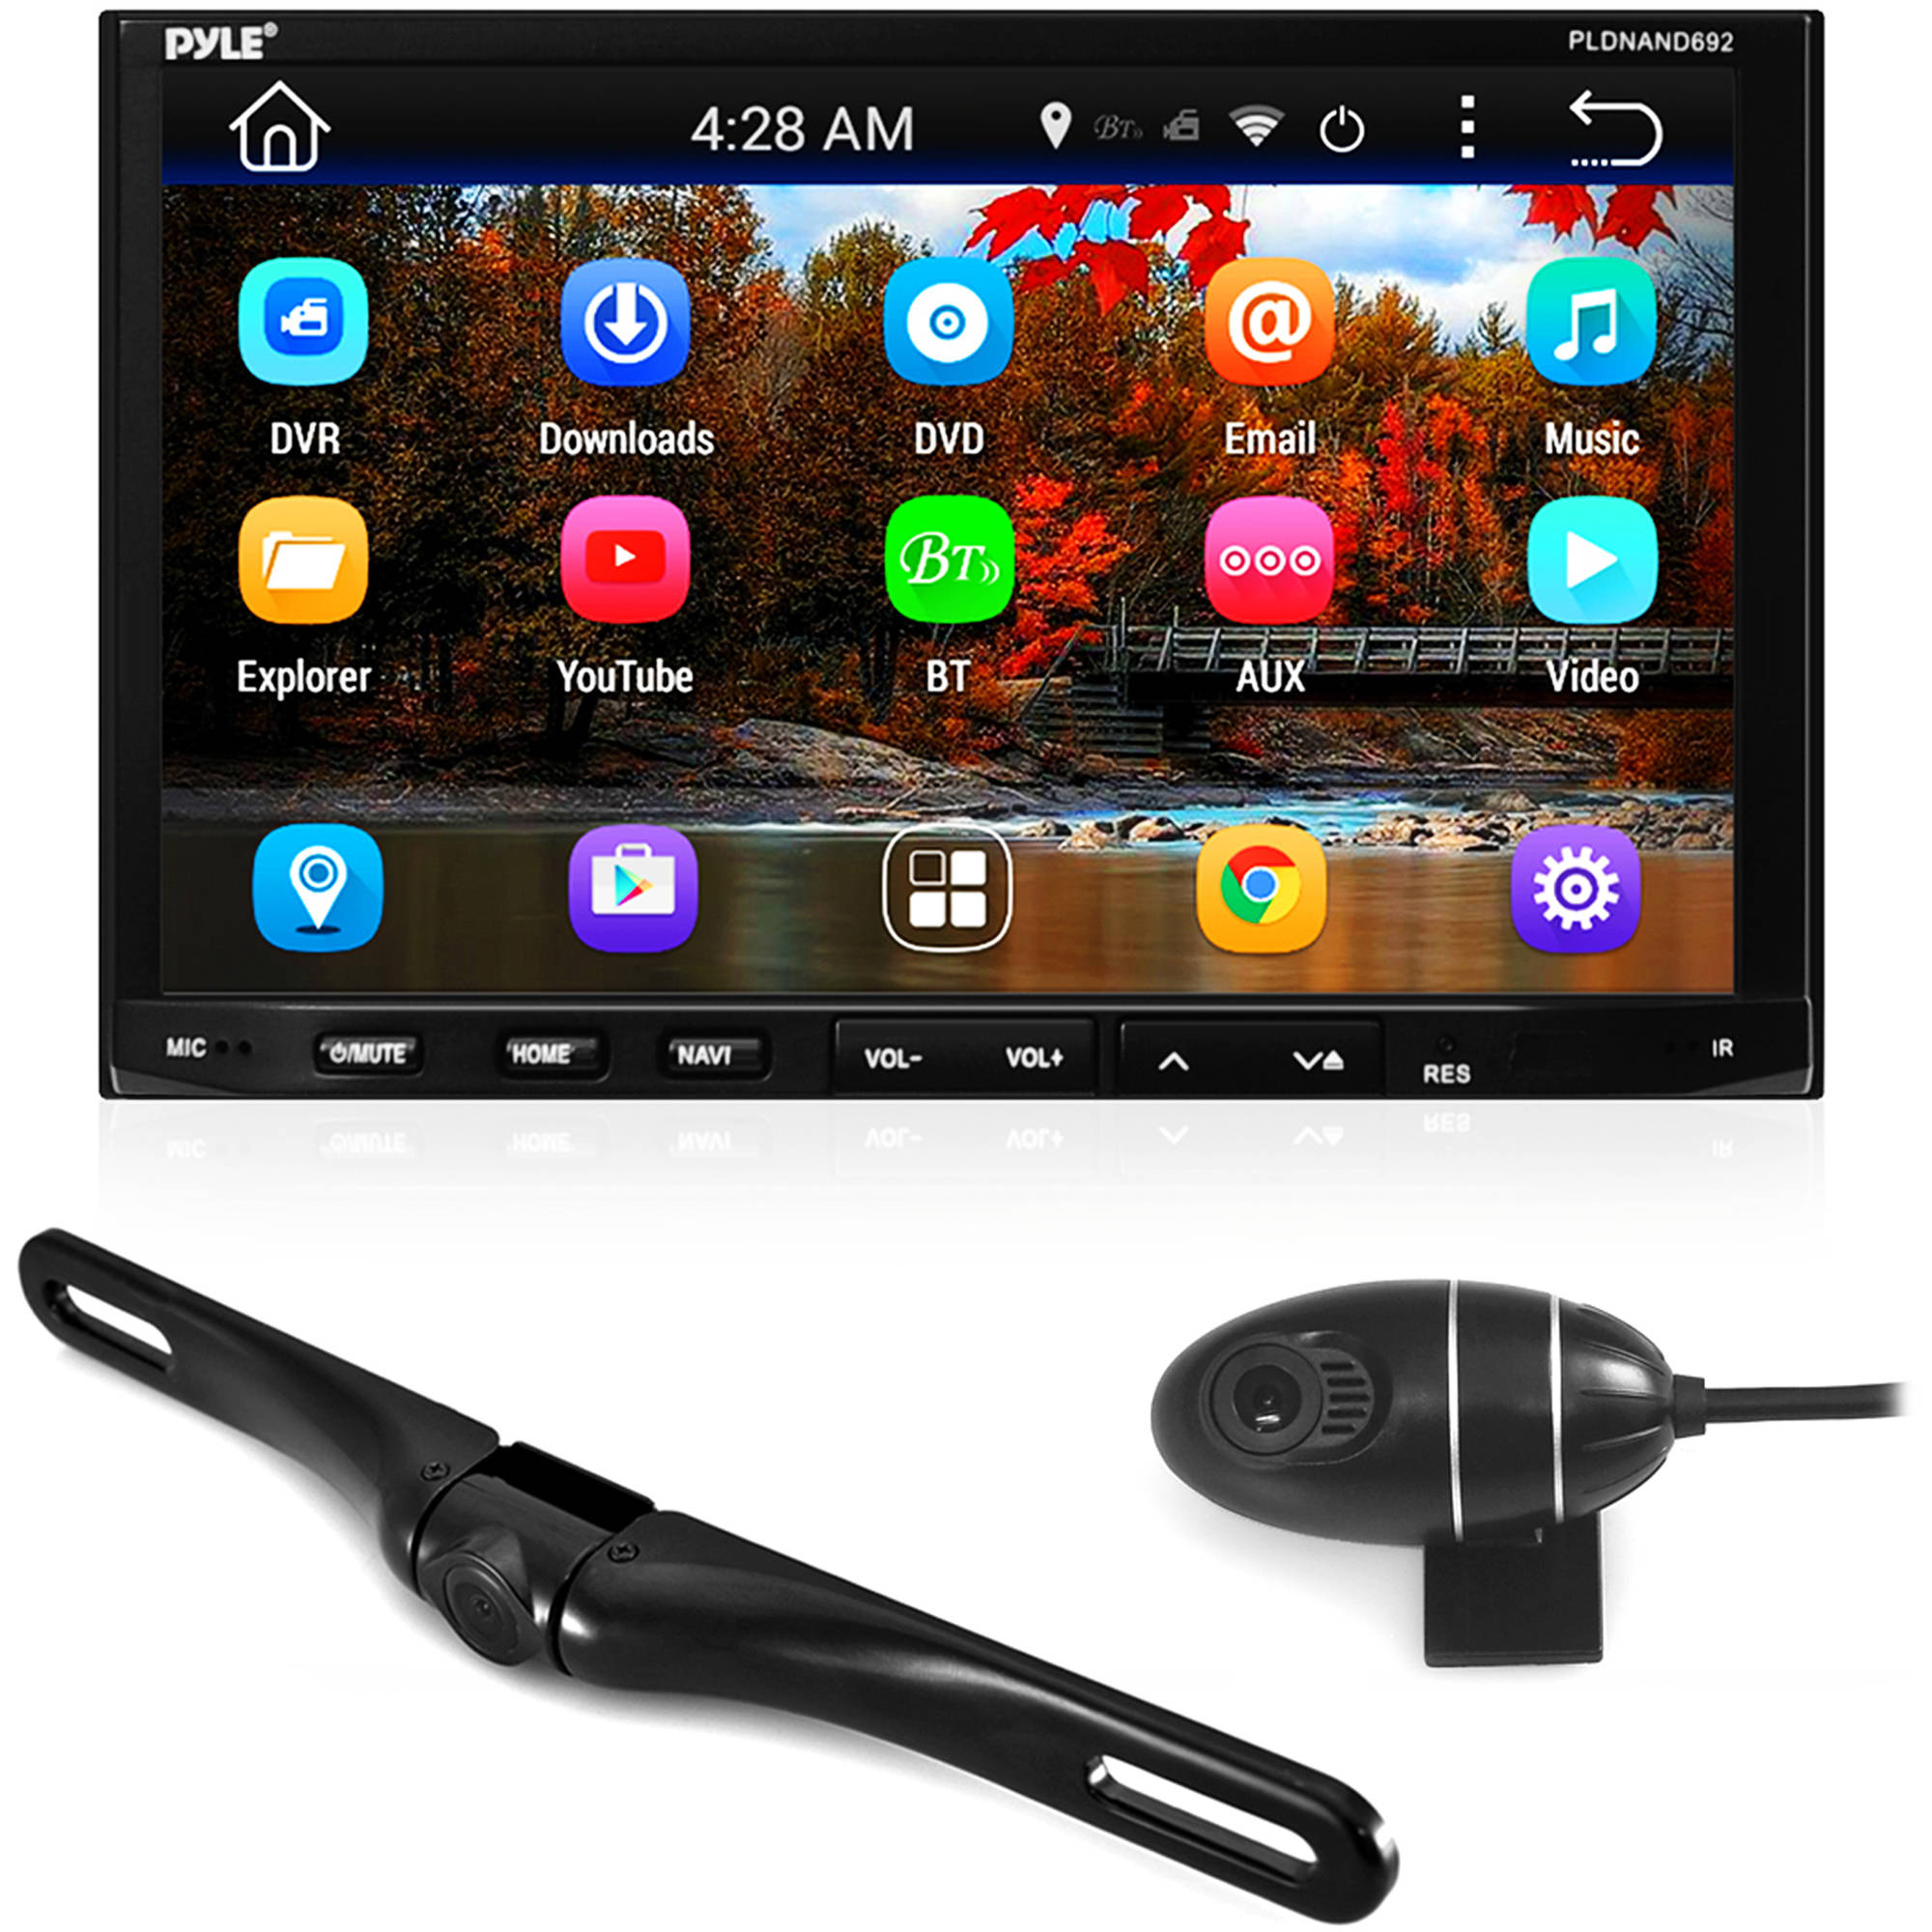 Pyle GPS Android Car Stereo Double Din DVR Dash Cam Backup Camera Kit- DVD, Navigation, Hands-Free Bluetooth... by Pyle